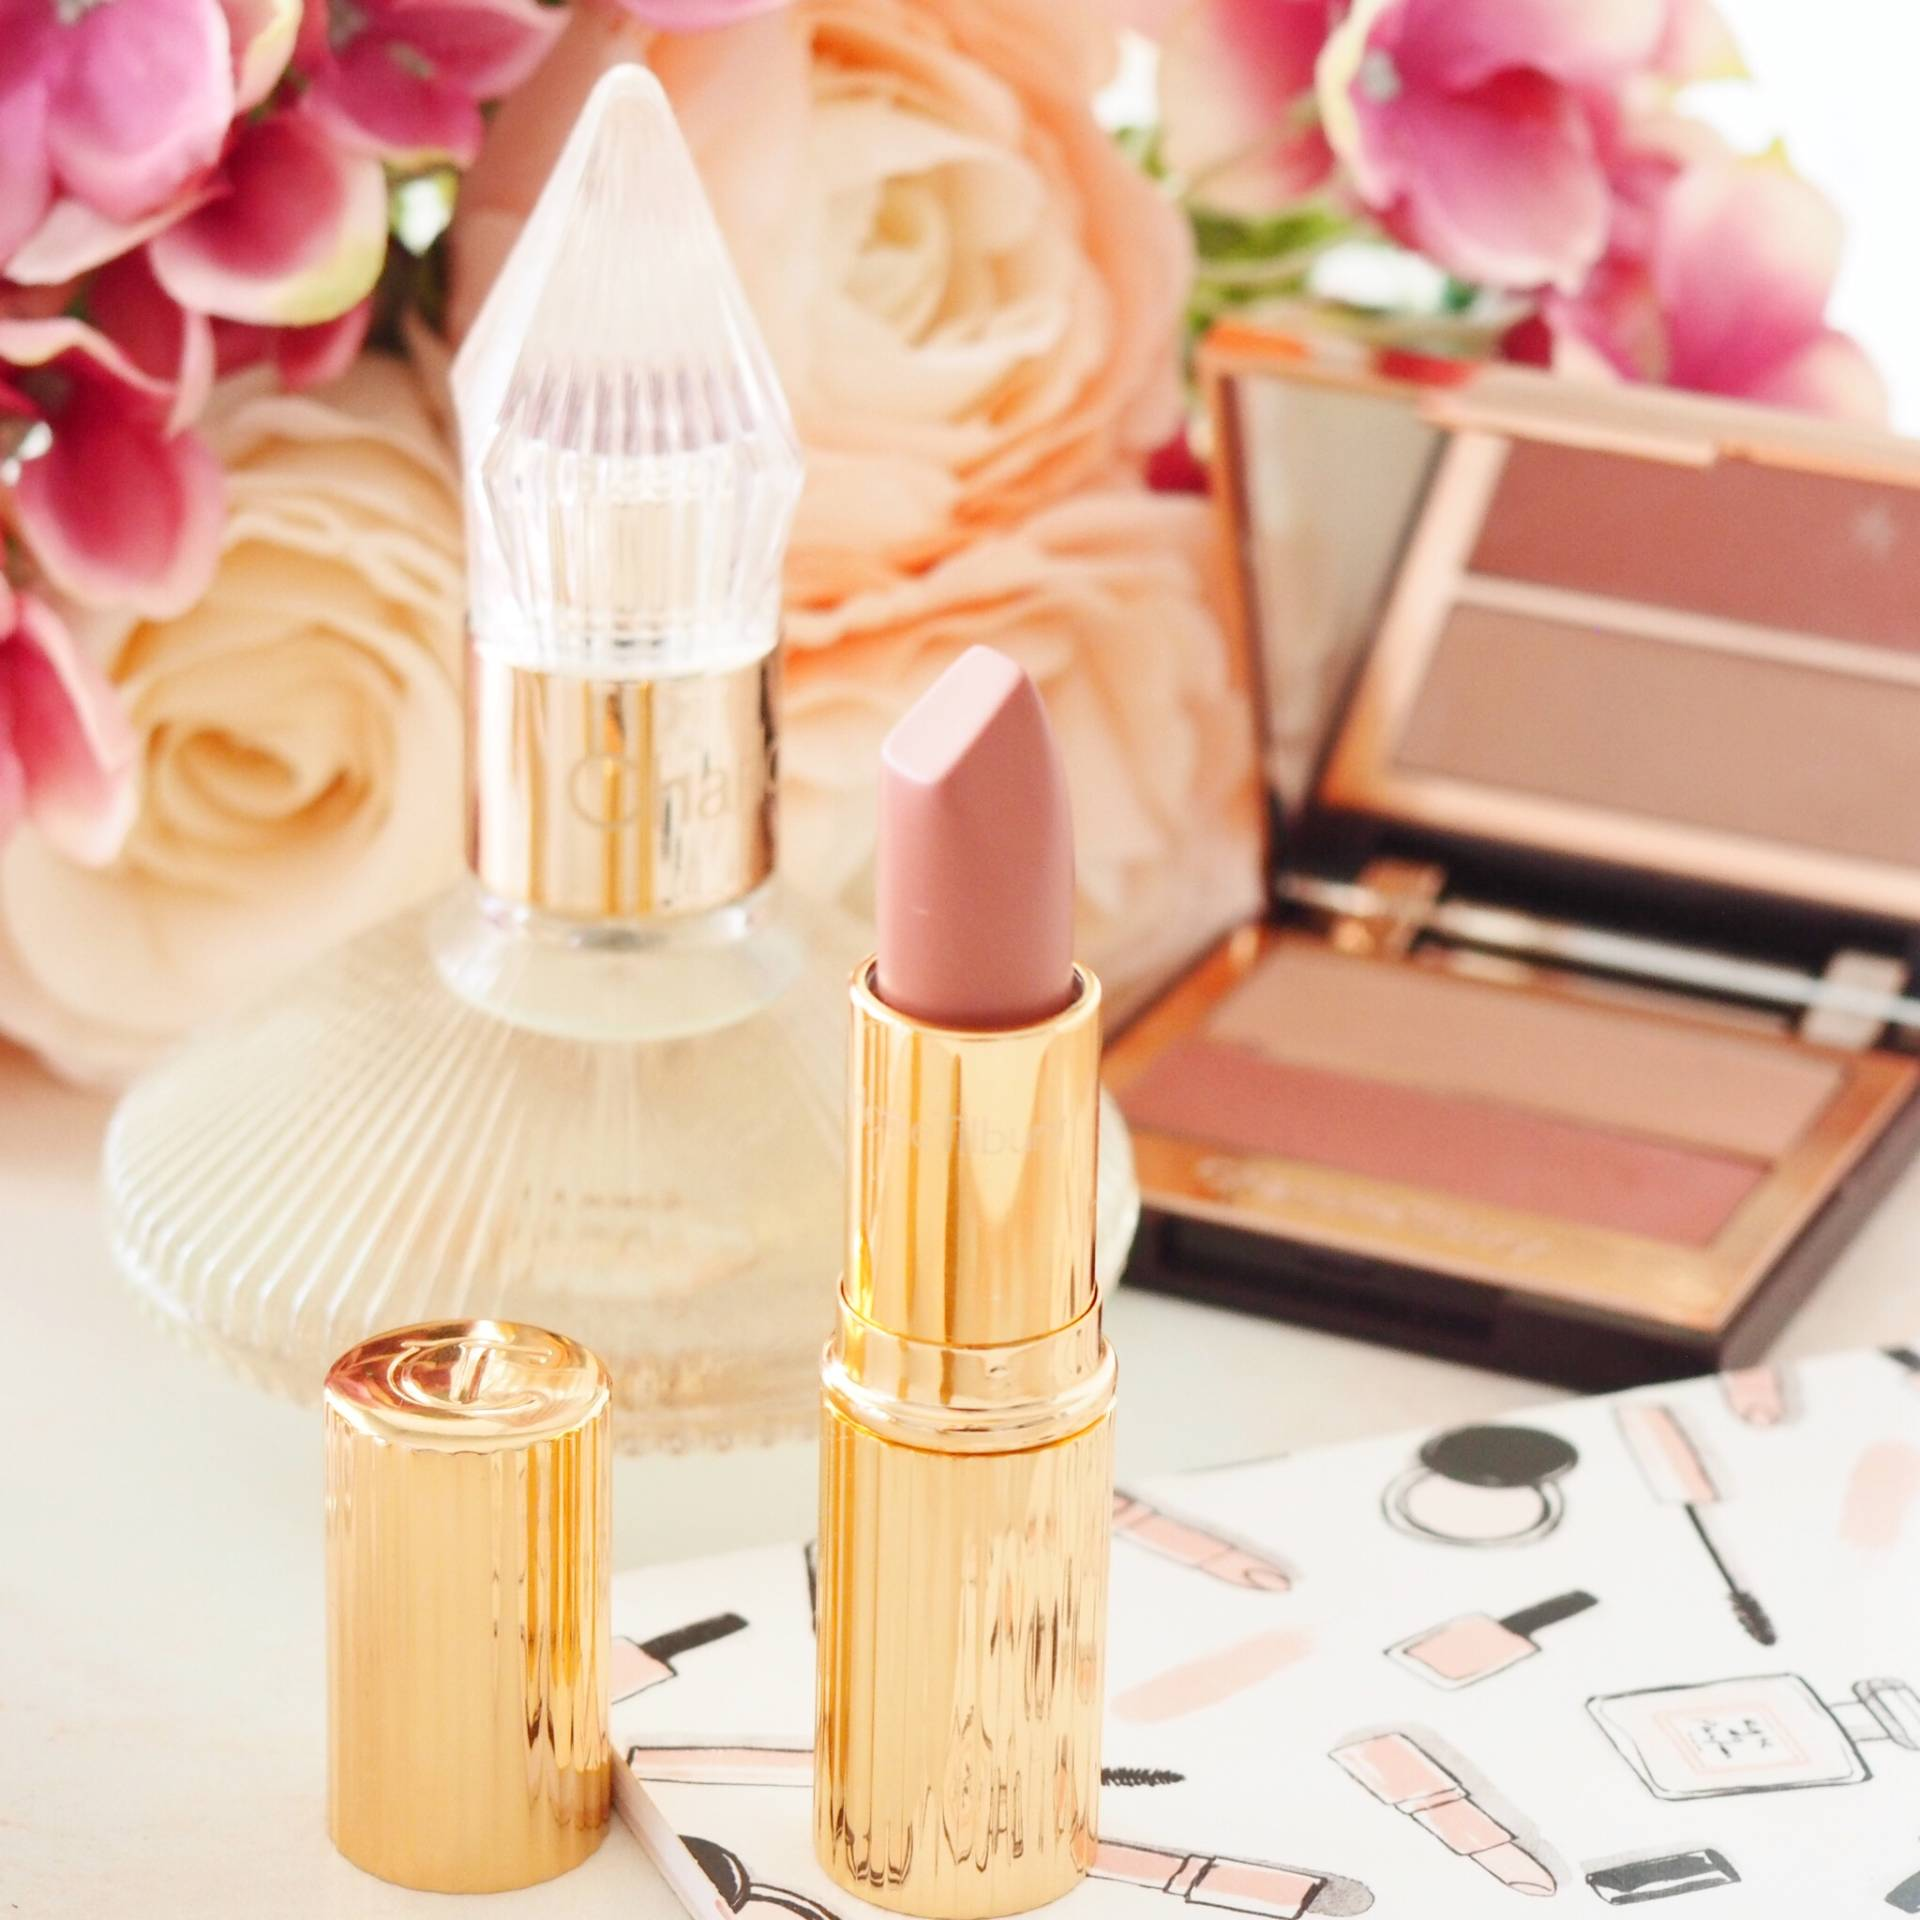 Charlotte Tilbury Miss Kensington Lipstick Review and Swatches